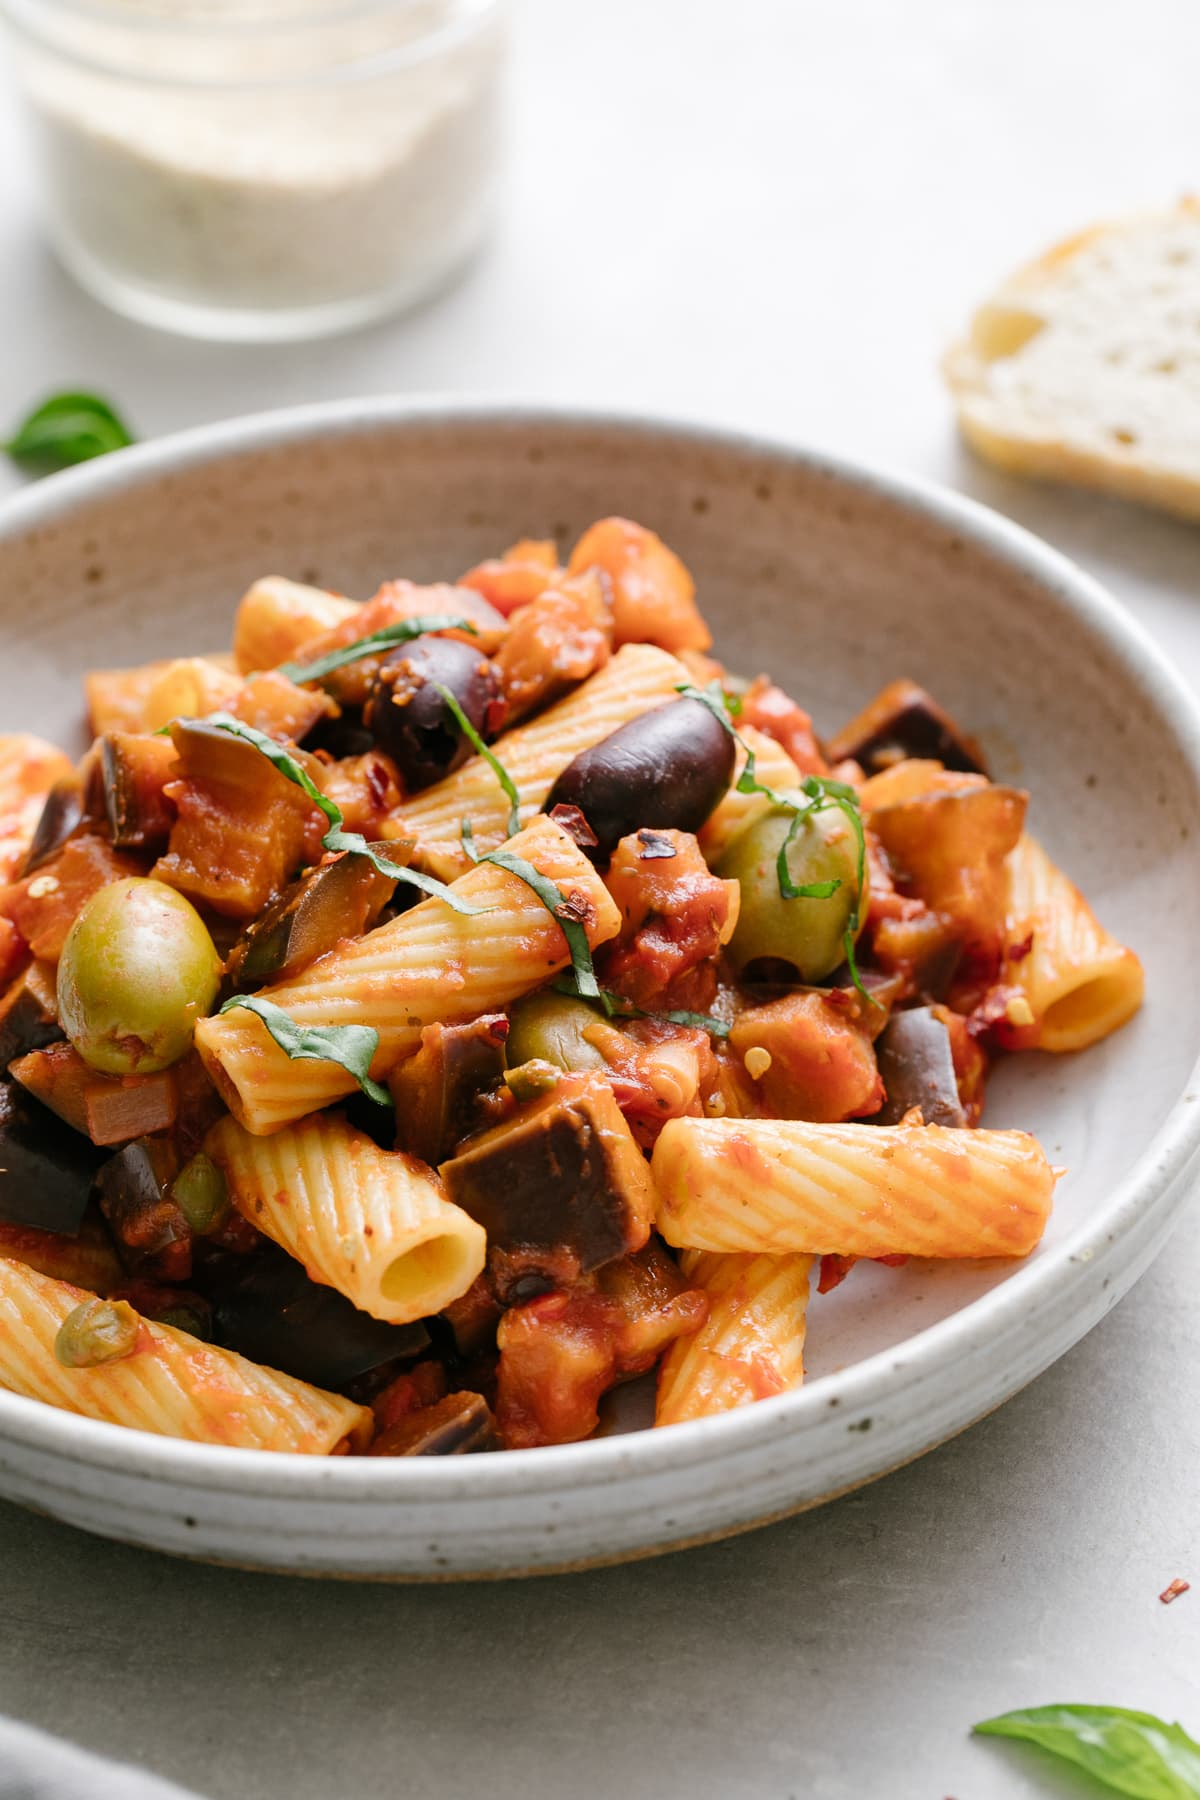 side angle view of a serving of eggplant puttanesca with pasta in a bowl with items surrounding.